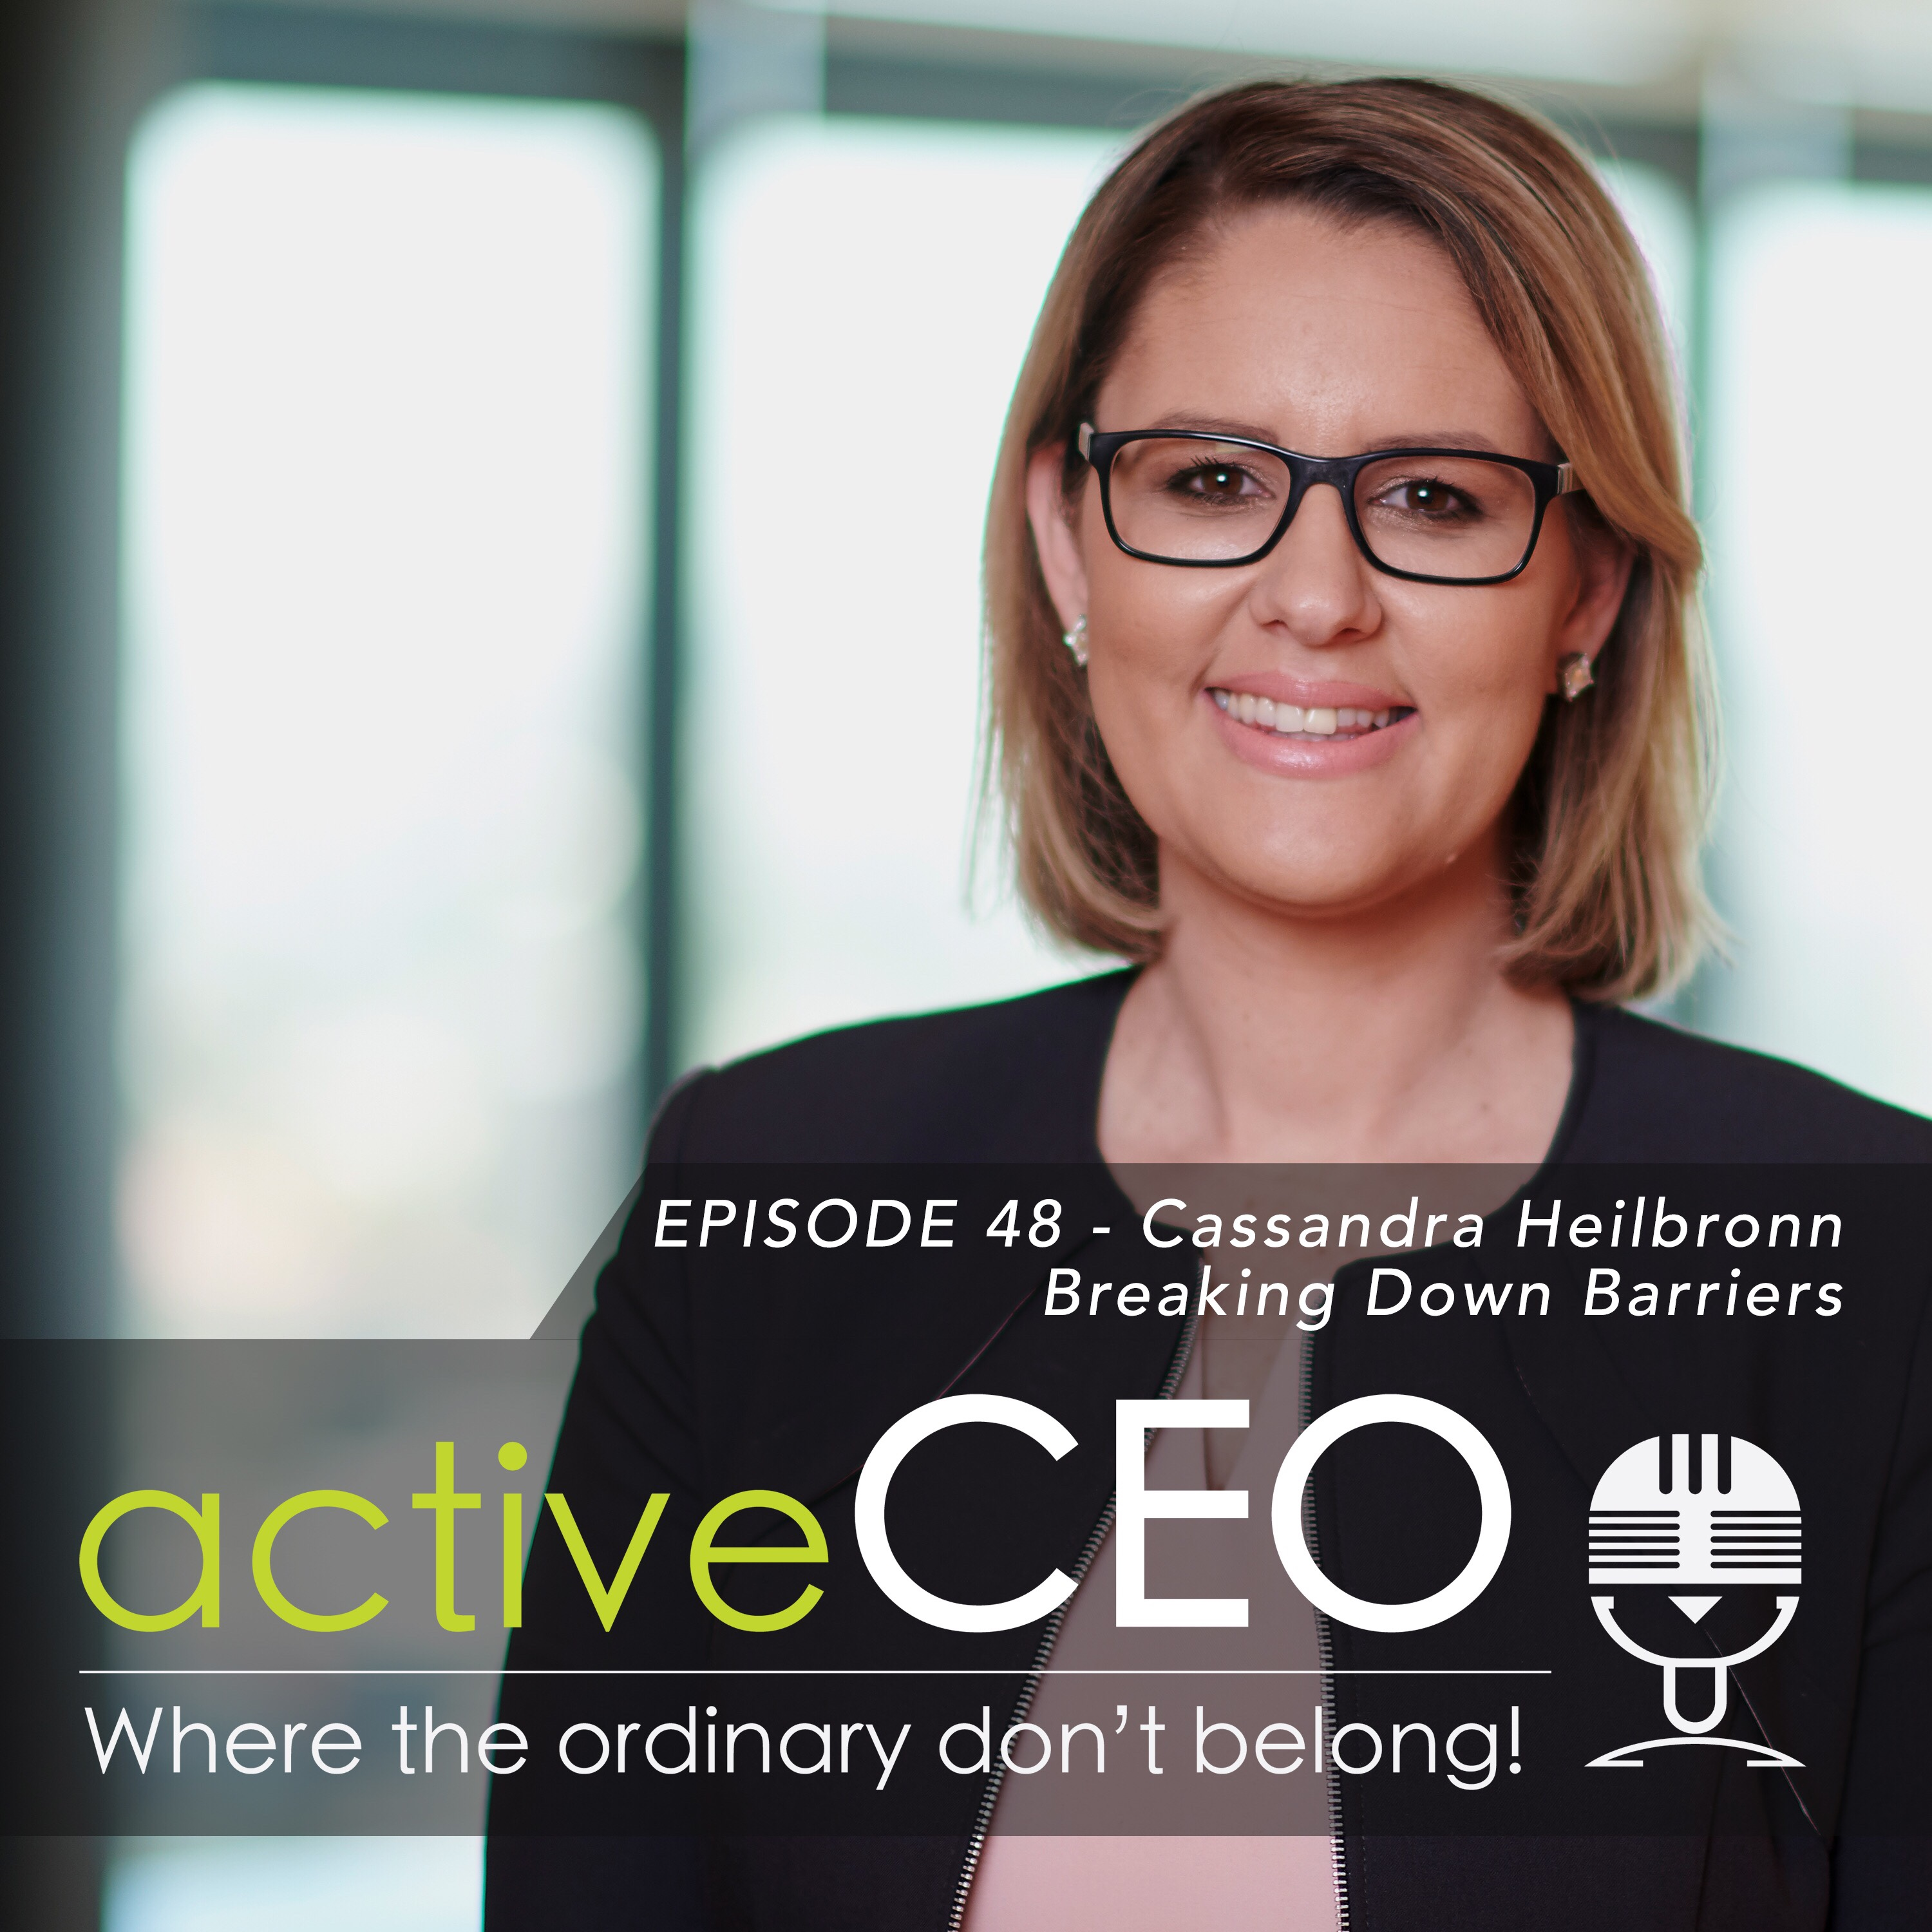 active CEO Podcast Cassandra Heilbronn (Minter Ellison) – Breaking Down Barriers